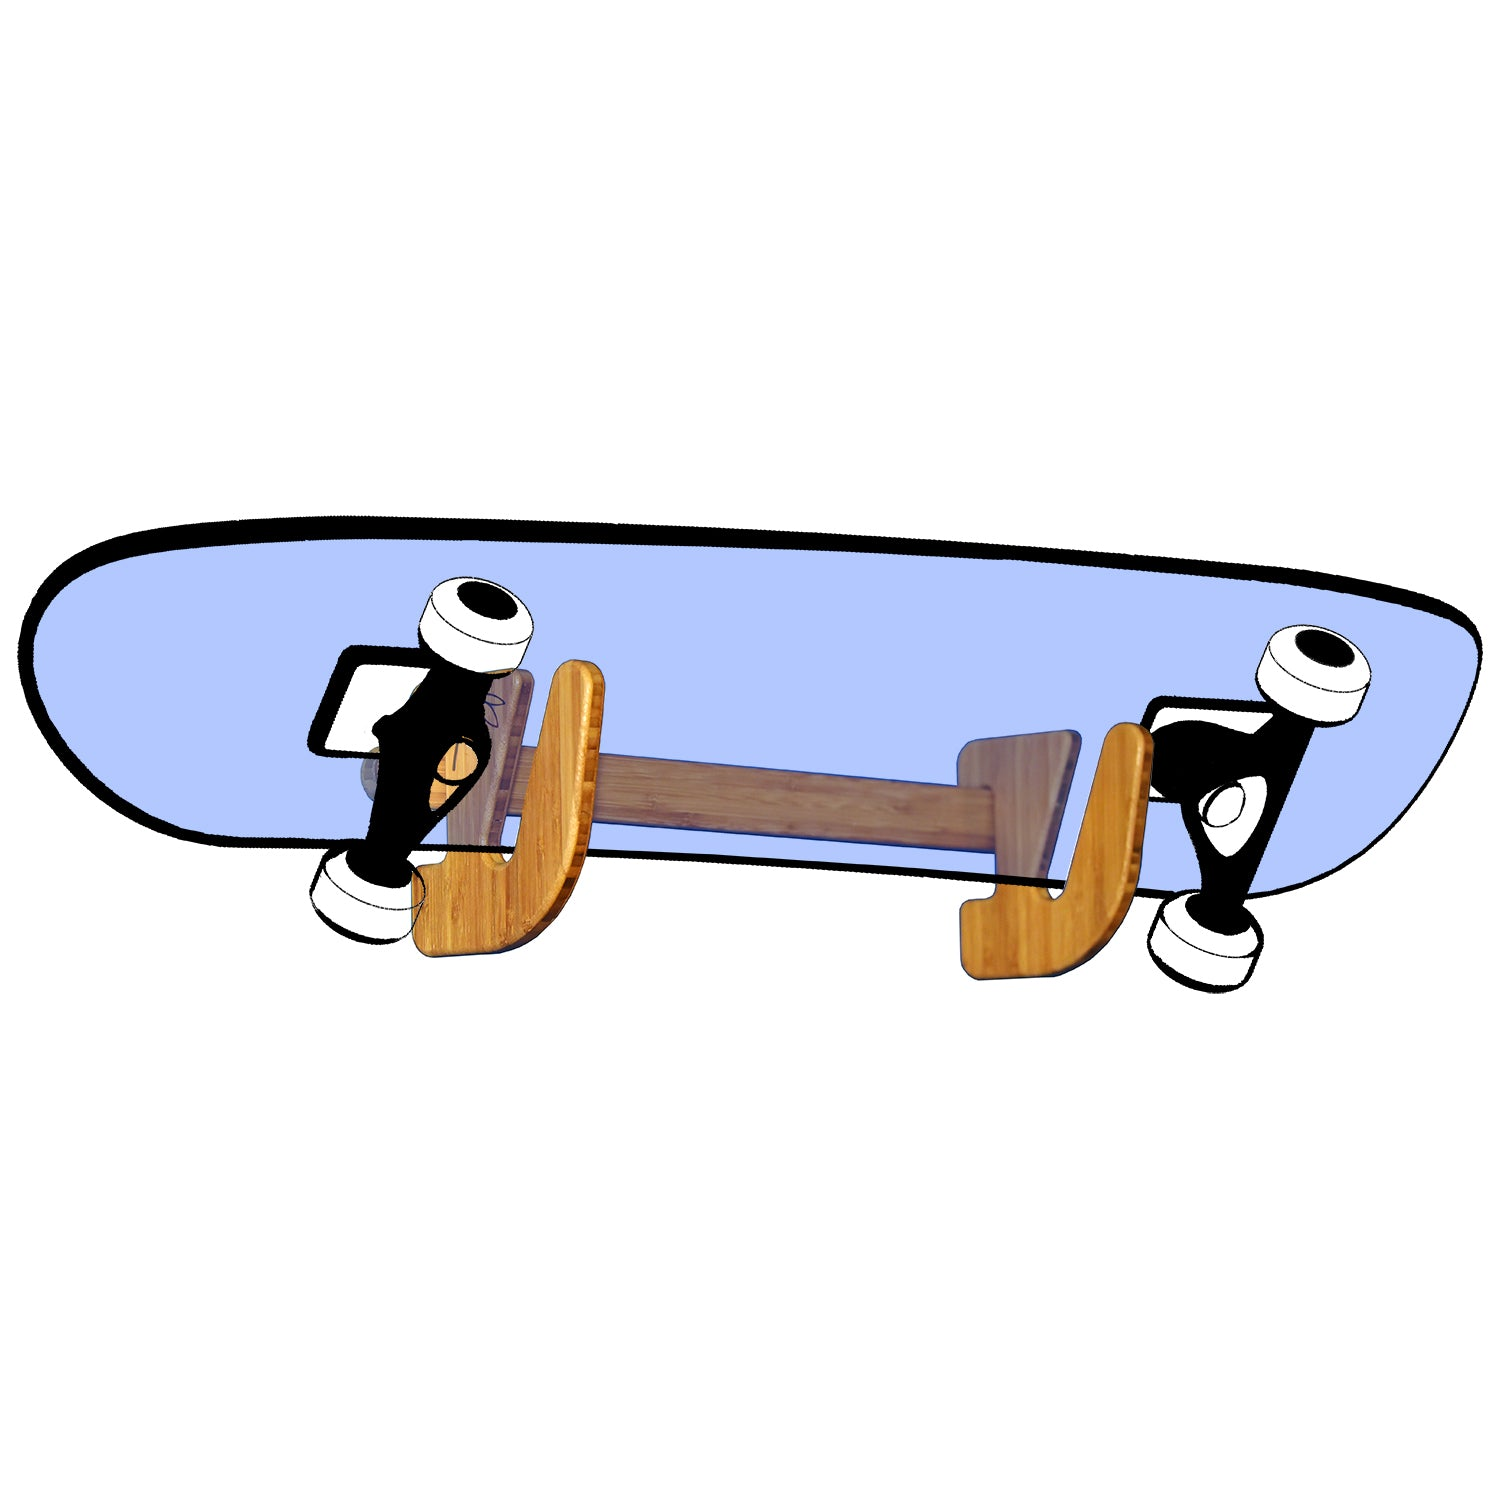 Skateboard Rack - Bamboo Wall Mounted Skate Rack